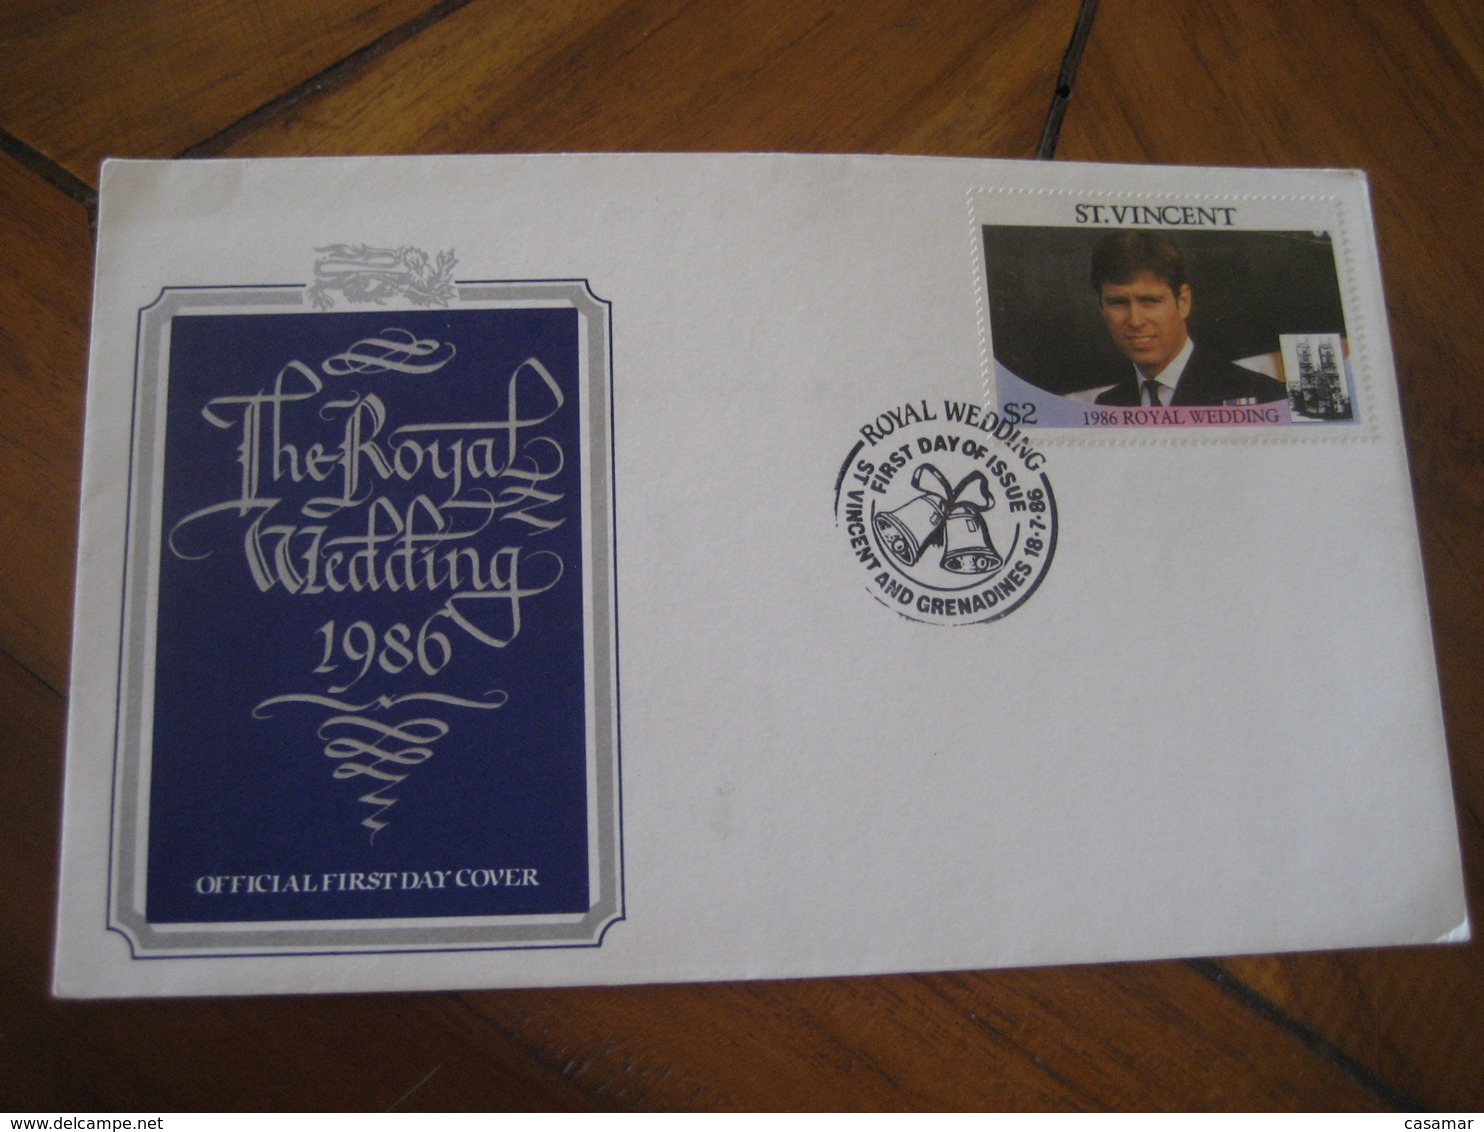 ST. VINCENT AND GRENADINES 1986 Royal Wedding Royalty FDC Cancel Cover British Colonies Area America - St.Vincent & Grenadines